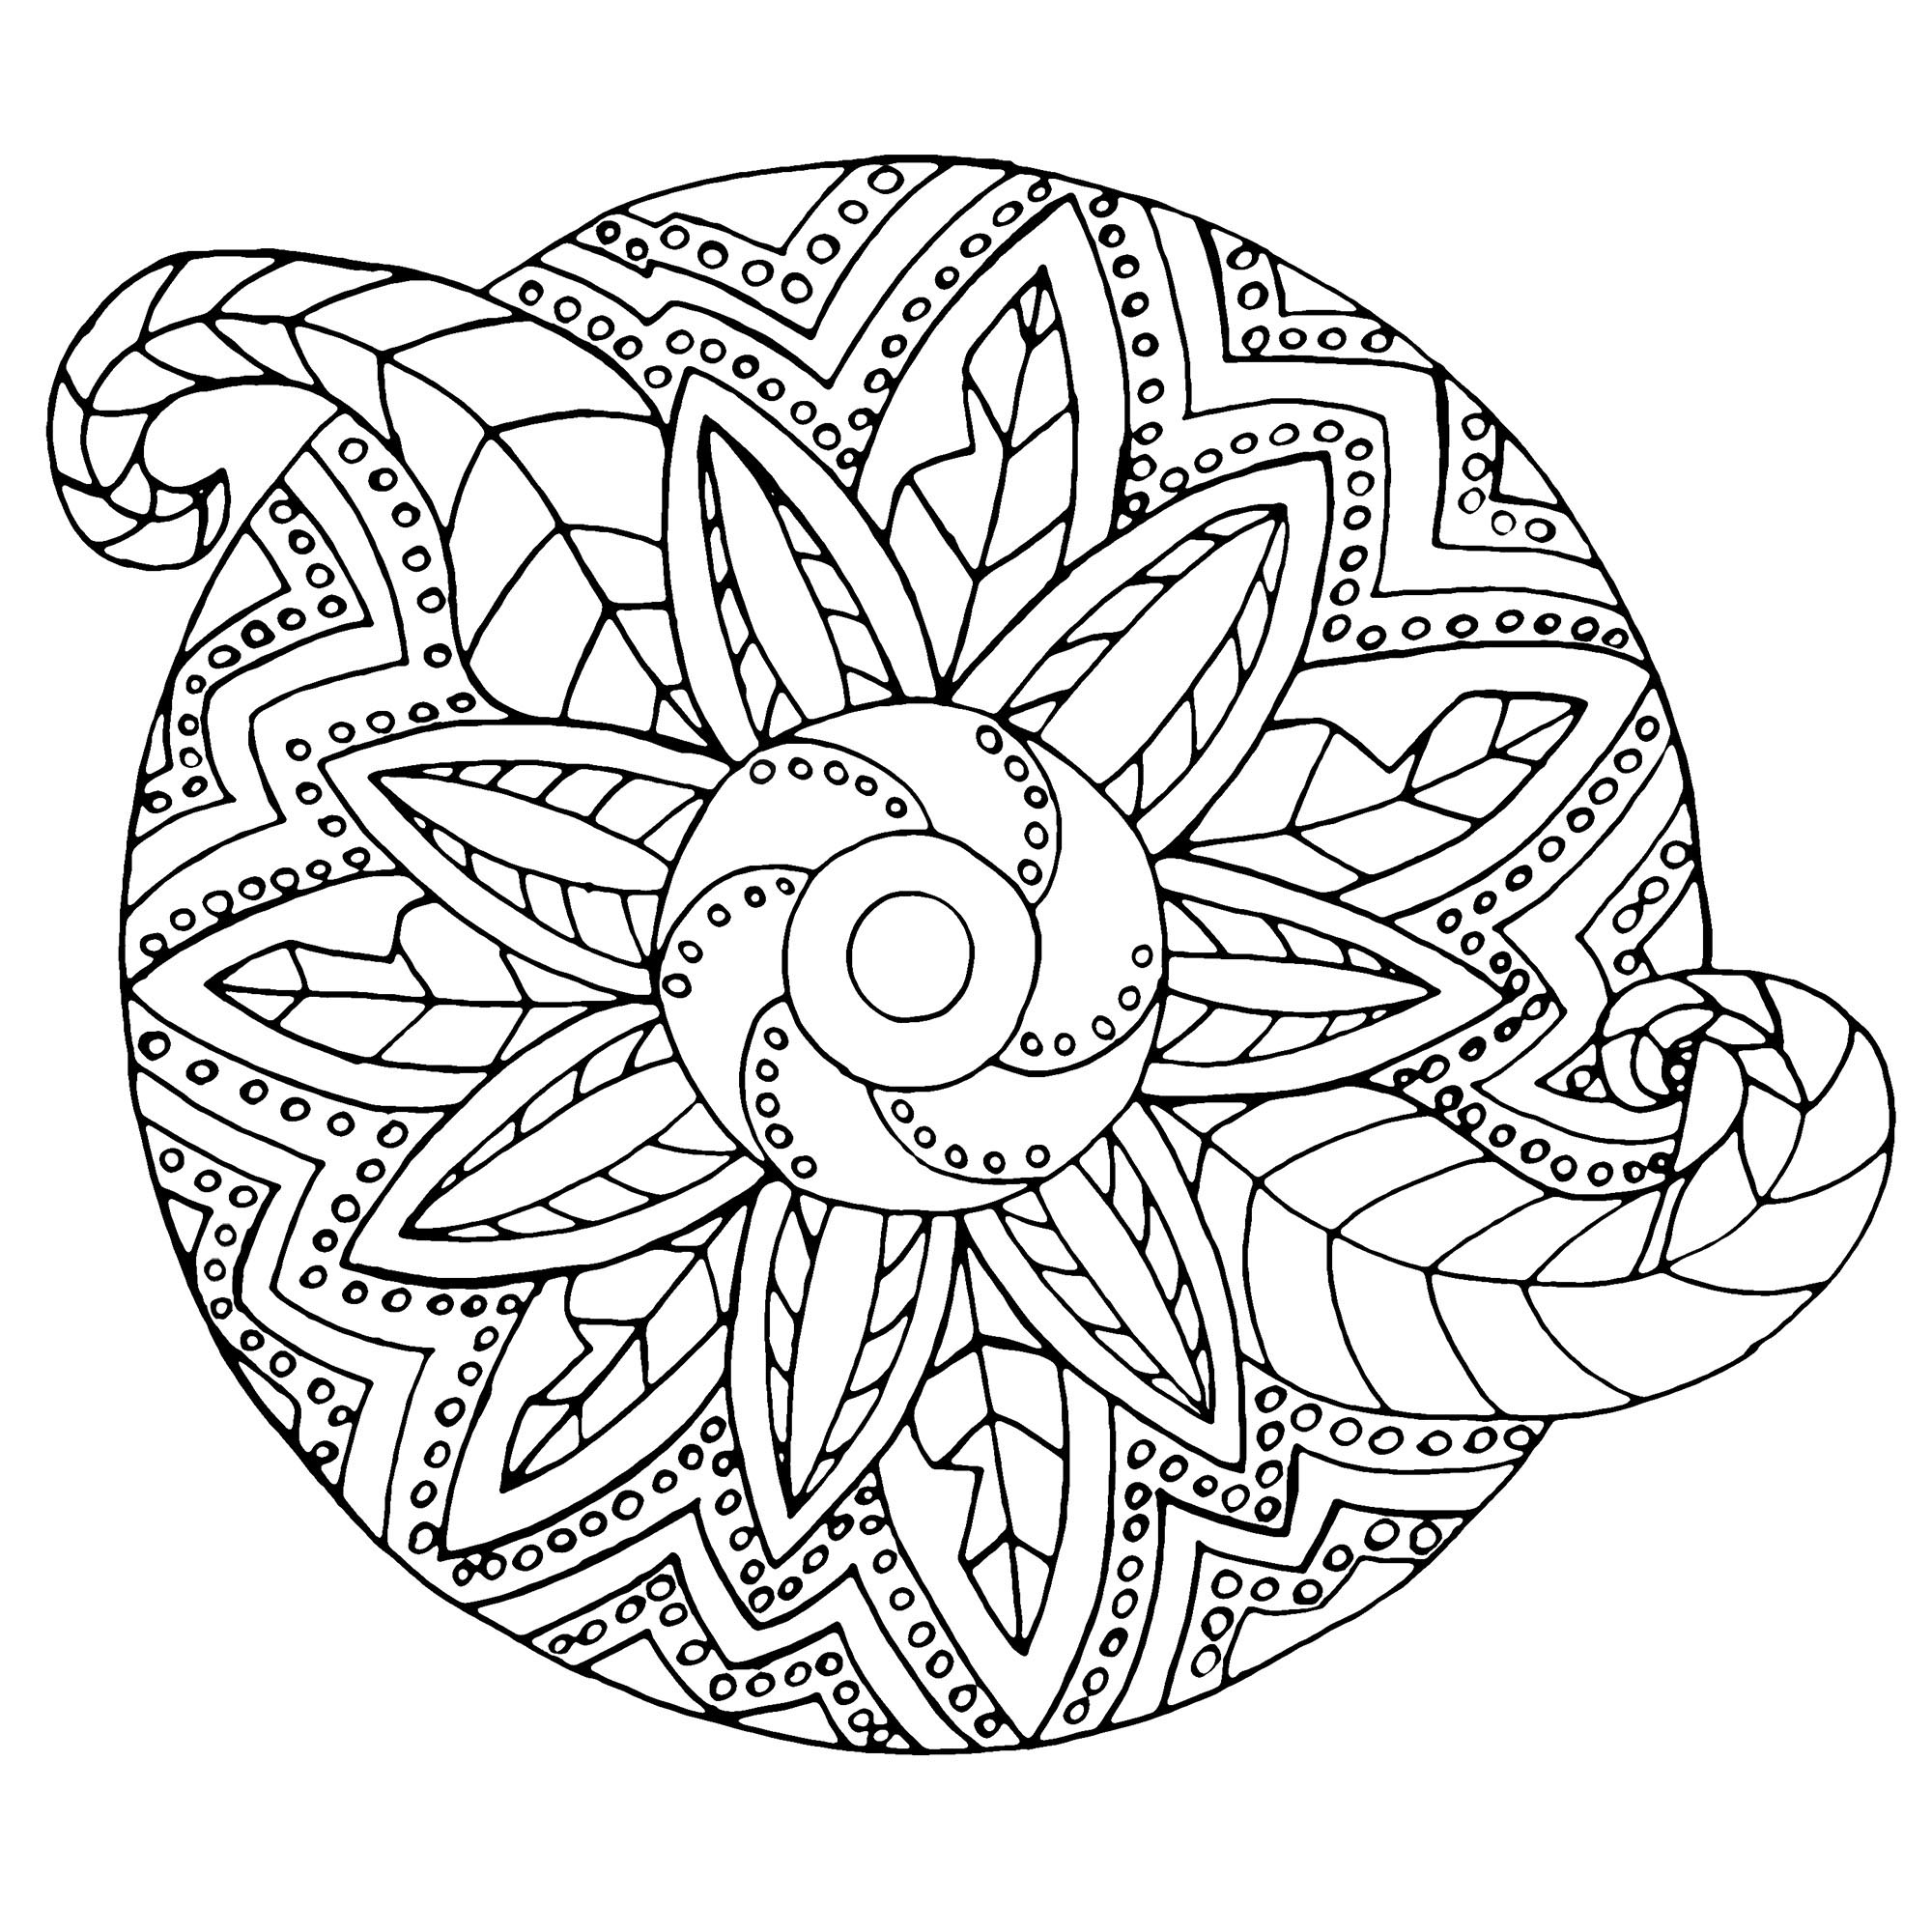 Cute Mandala with both metallic and vegetal forms. A Mandala coloring page easy to color, perfect for the children, with large areas to color. Do whatever it takes to get rid of any distractions that may interfere with your coloring.